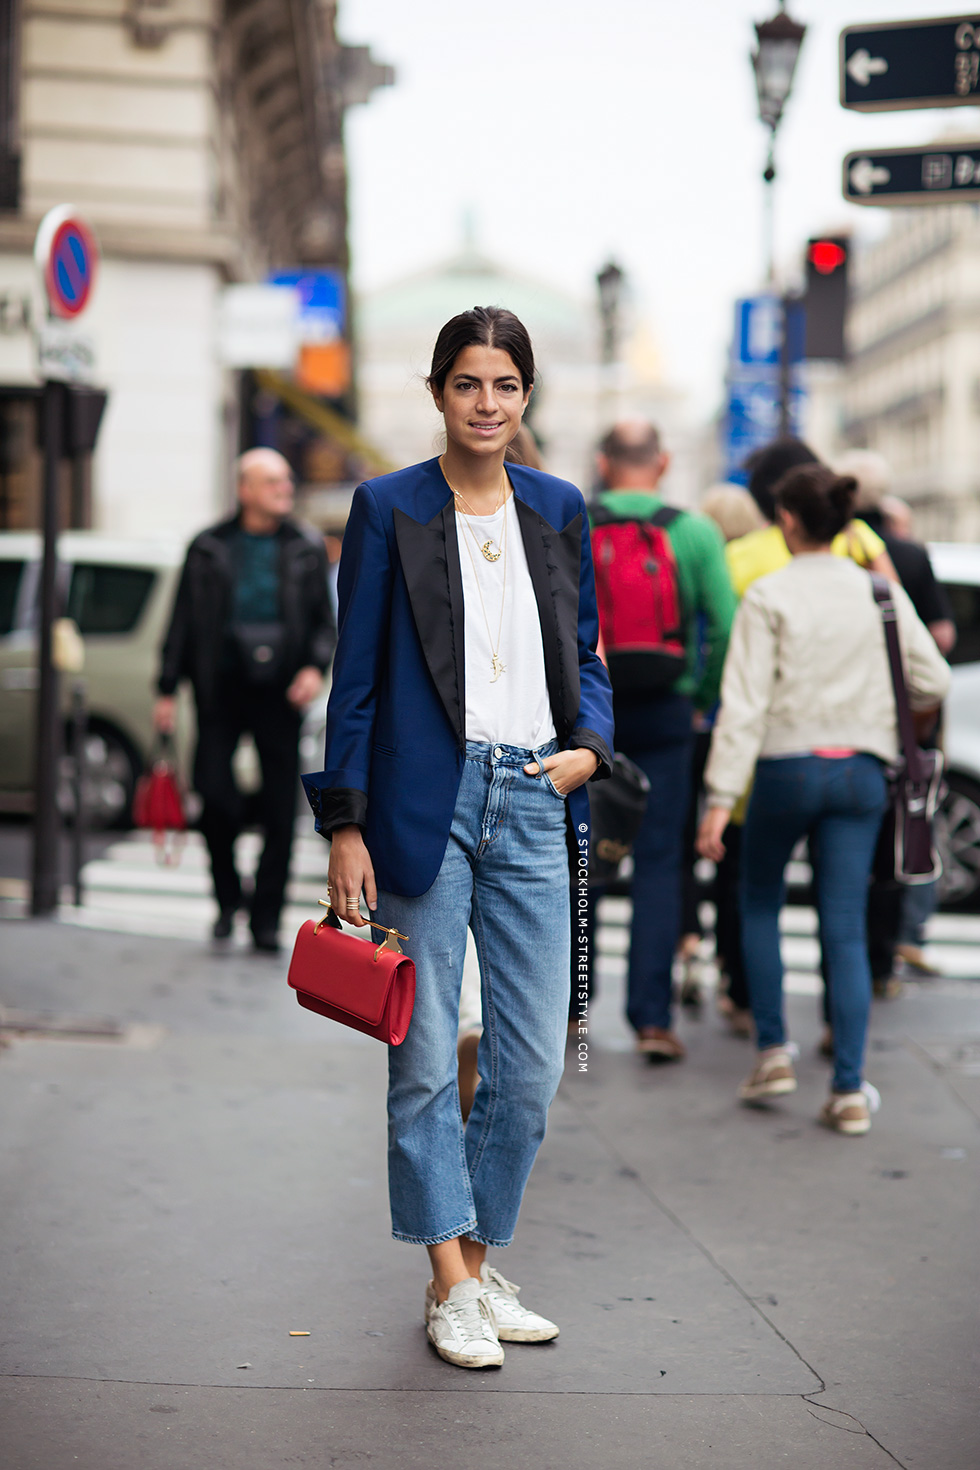 How To Find Your Personal Style According To Leandra Medine Visual Therapy